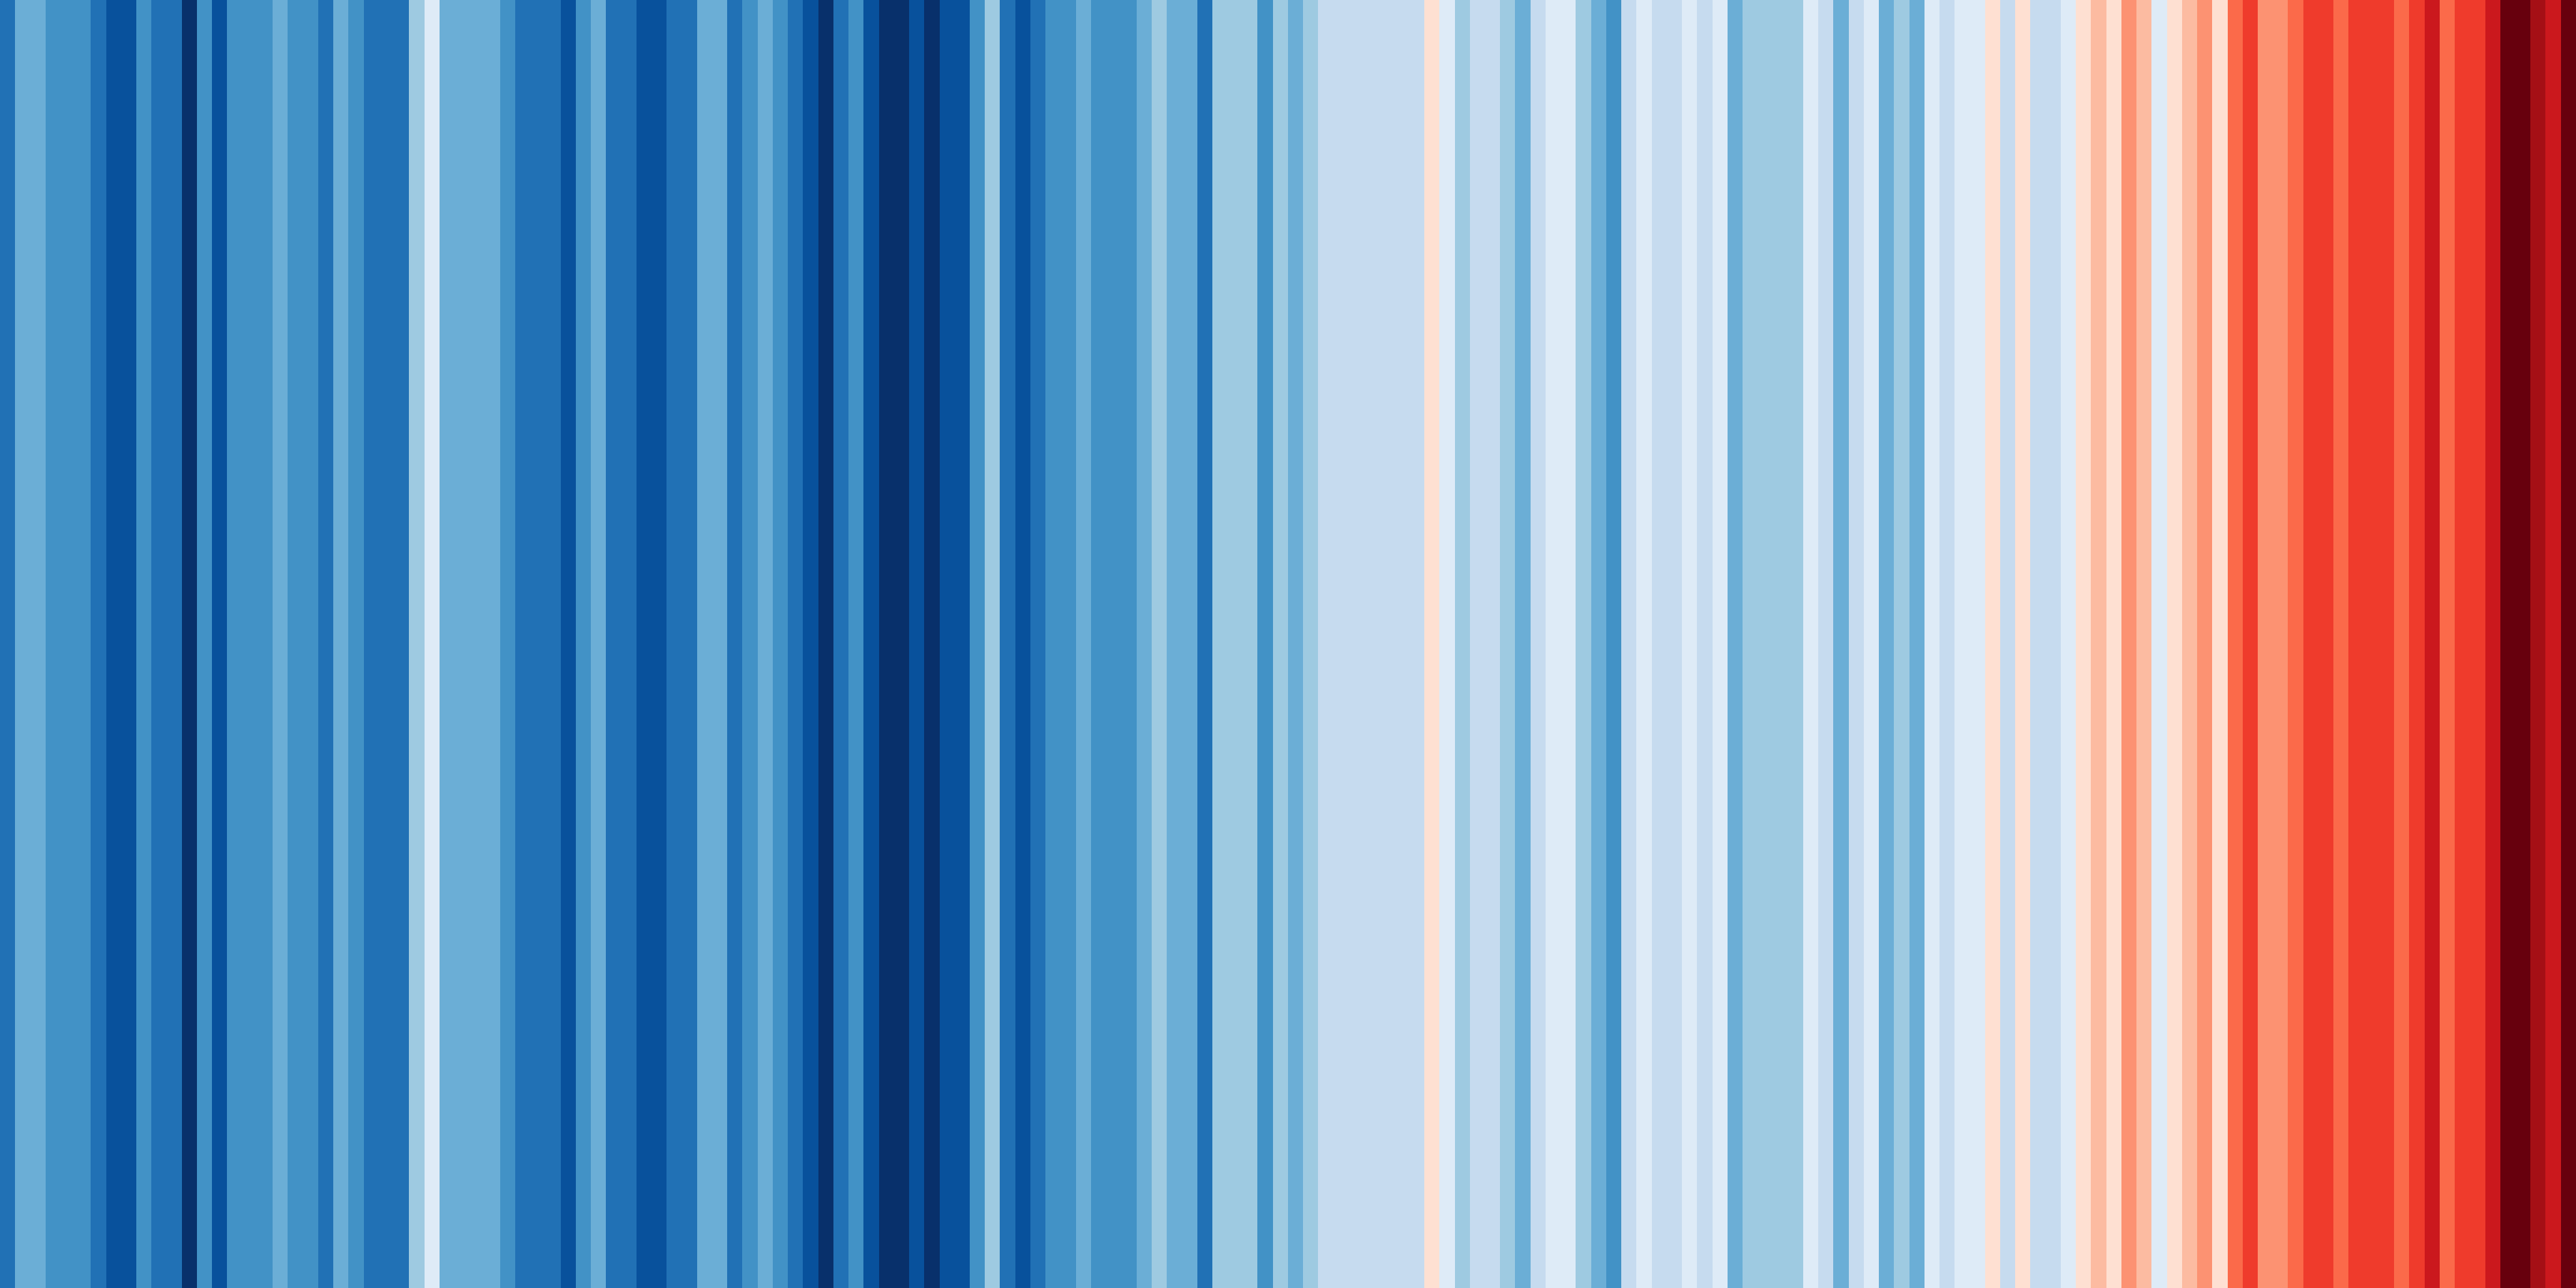 climate stripes abstract image going from blue to red